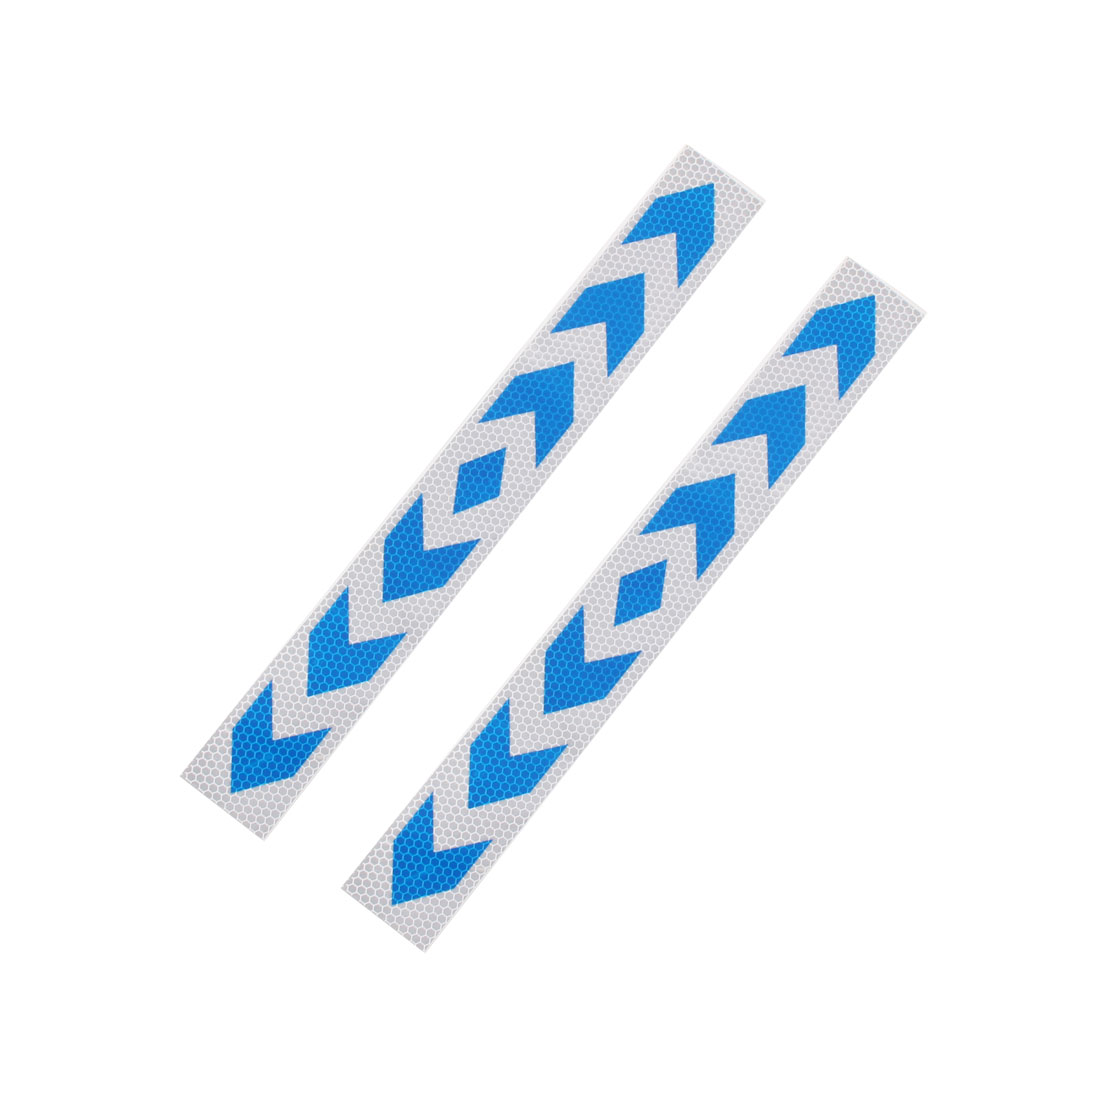 Paper Direction Sign Print Adhensive Car Sticker Blue White 2 Pcs